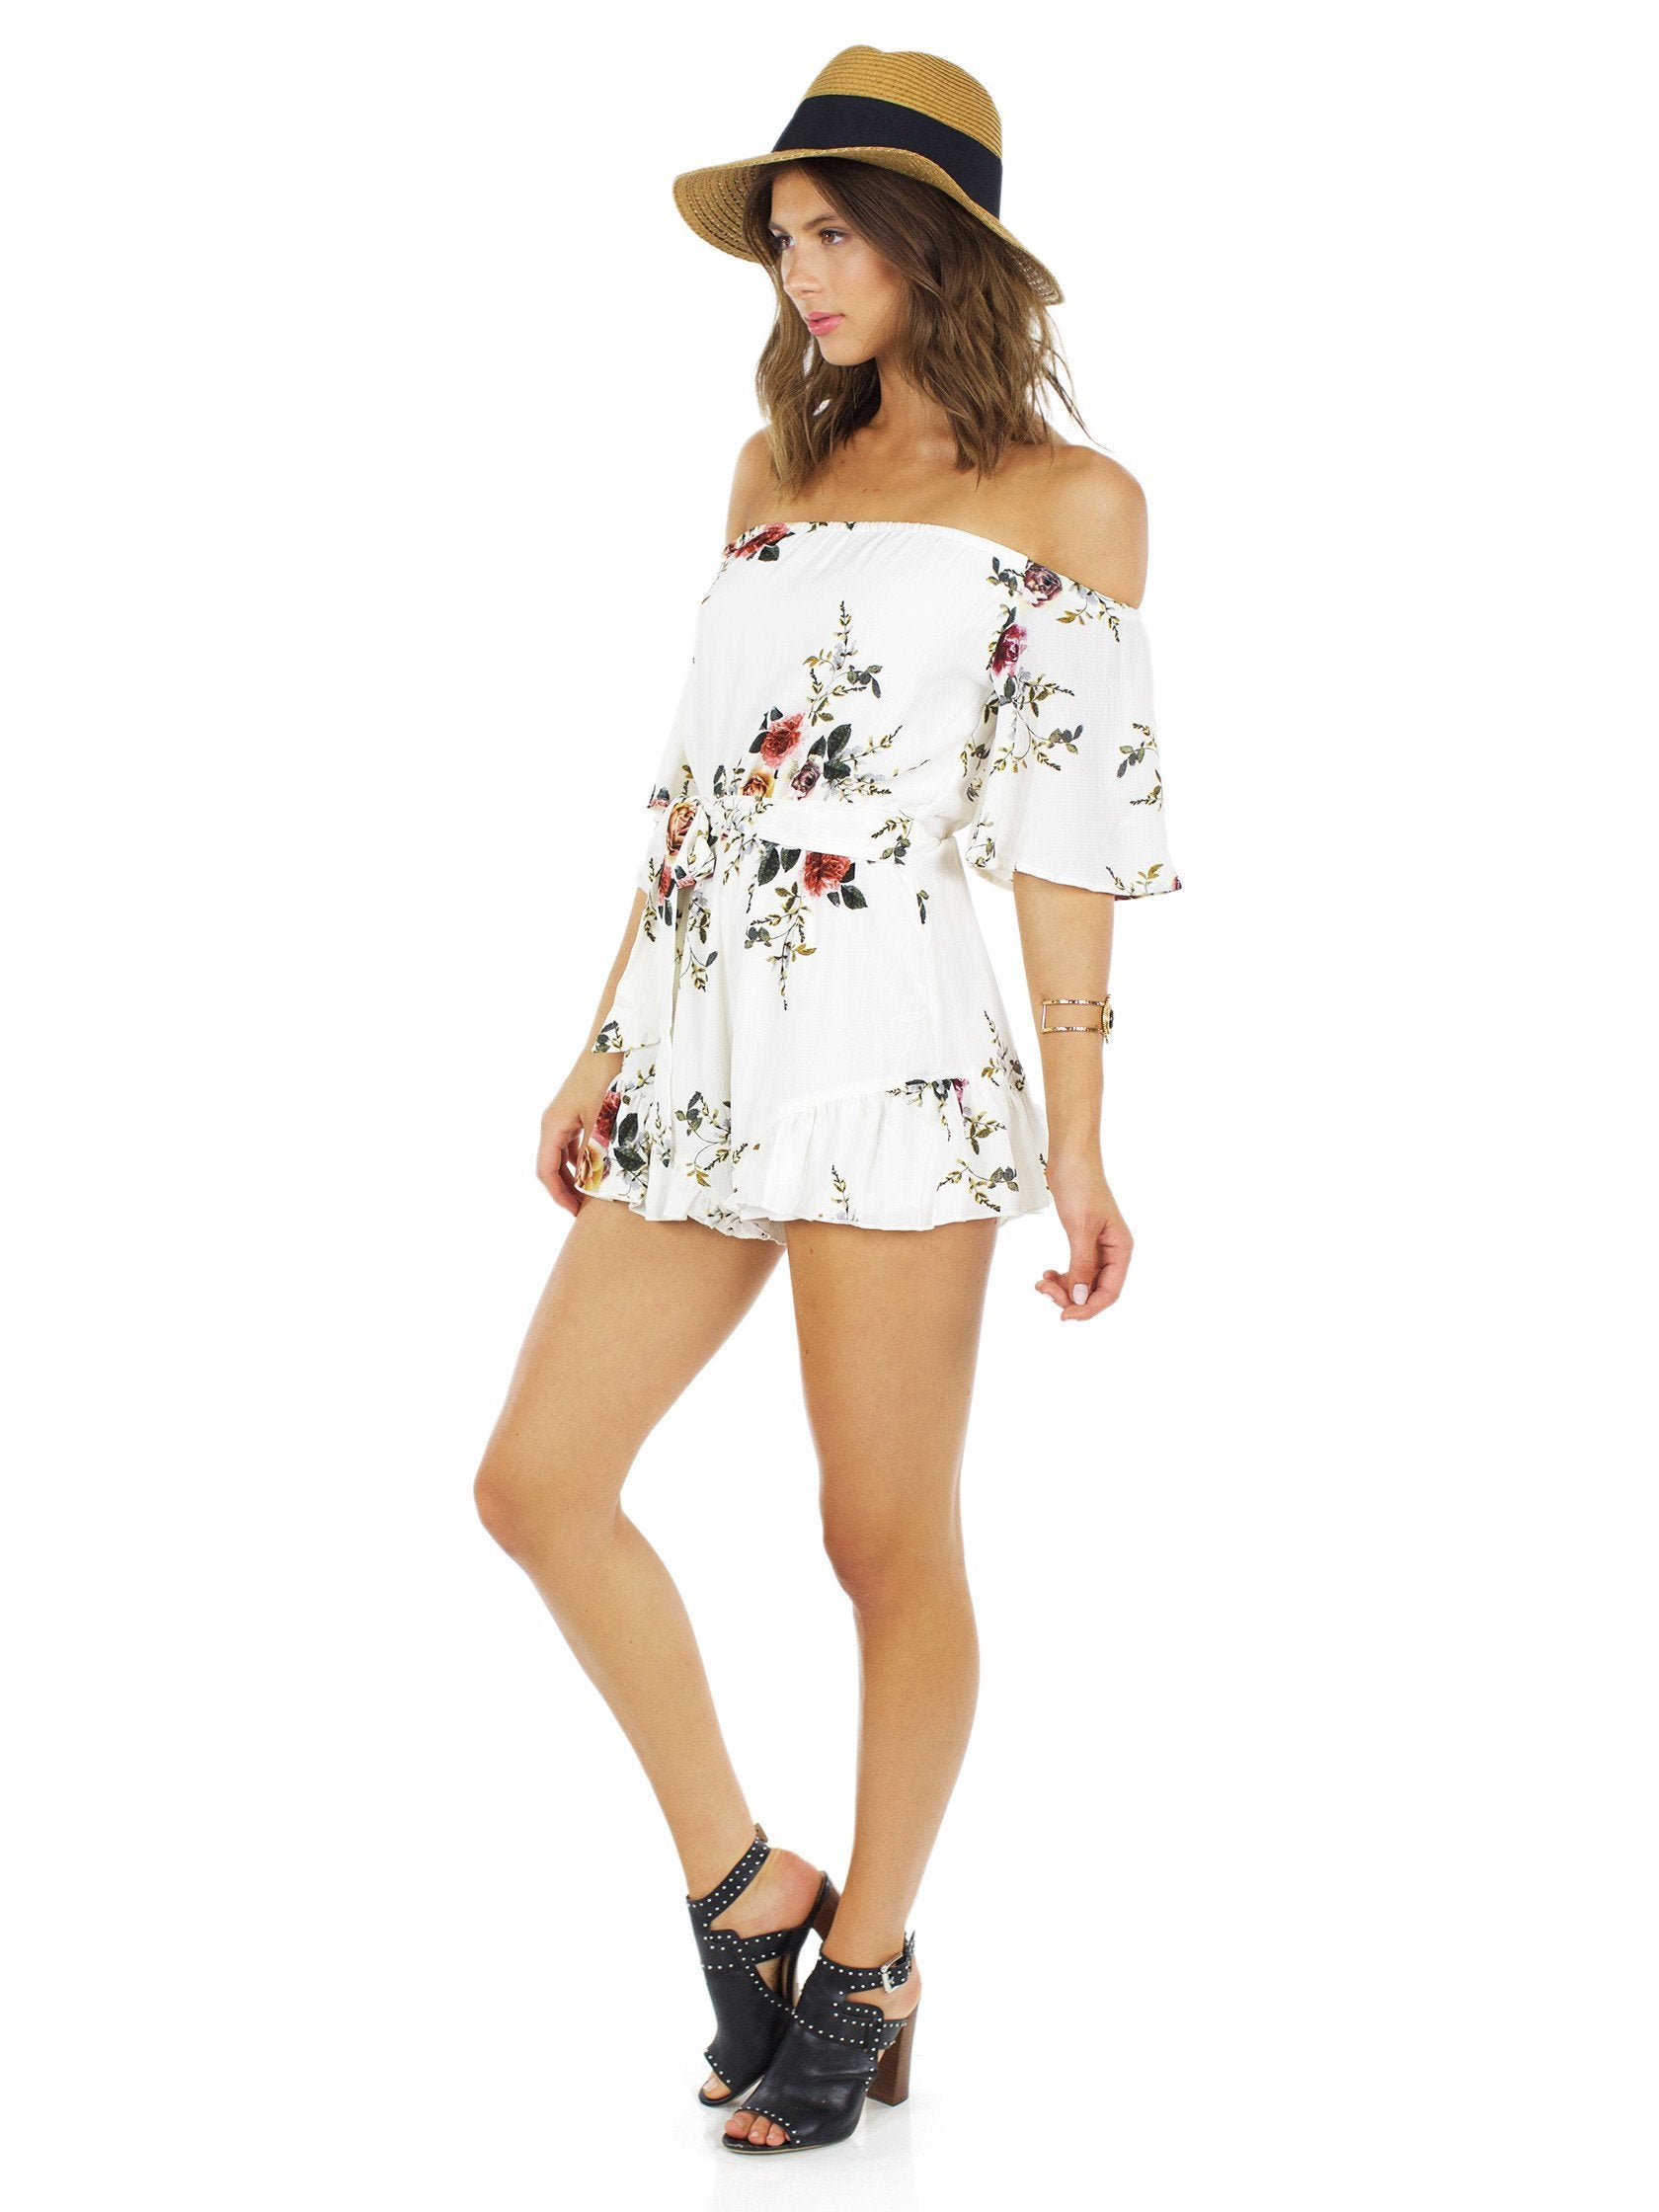 Woman wearing a romper rental from Reverse called Maude Romper